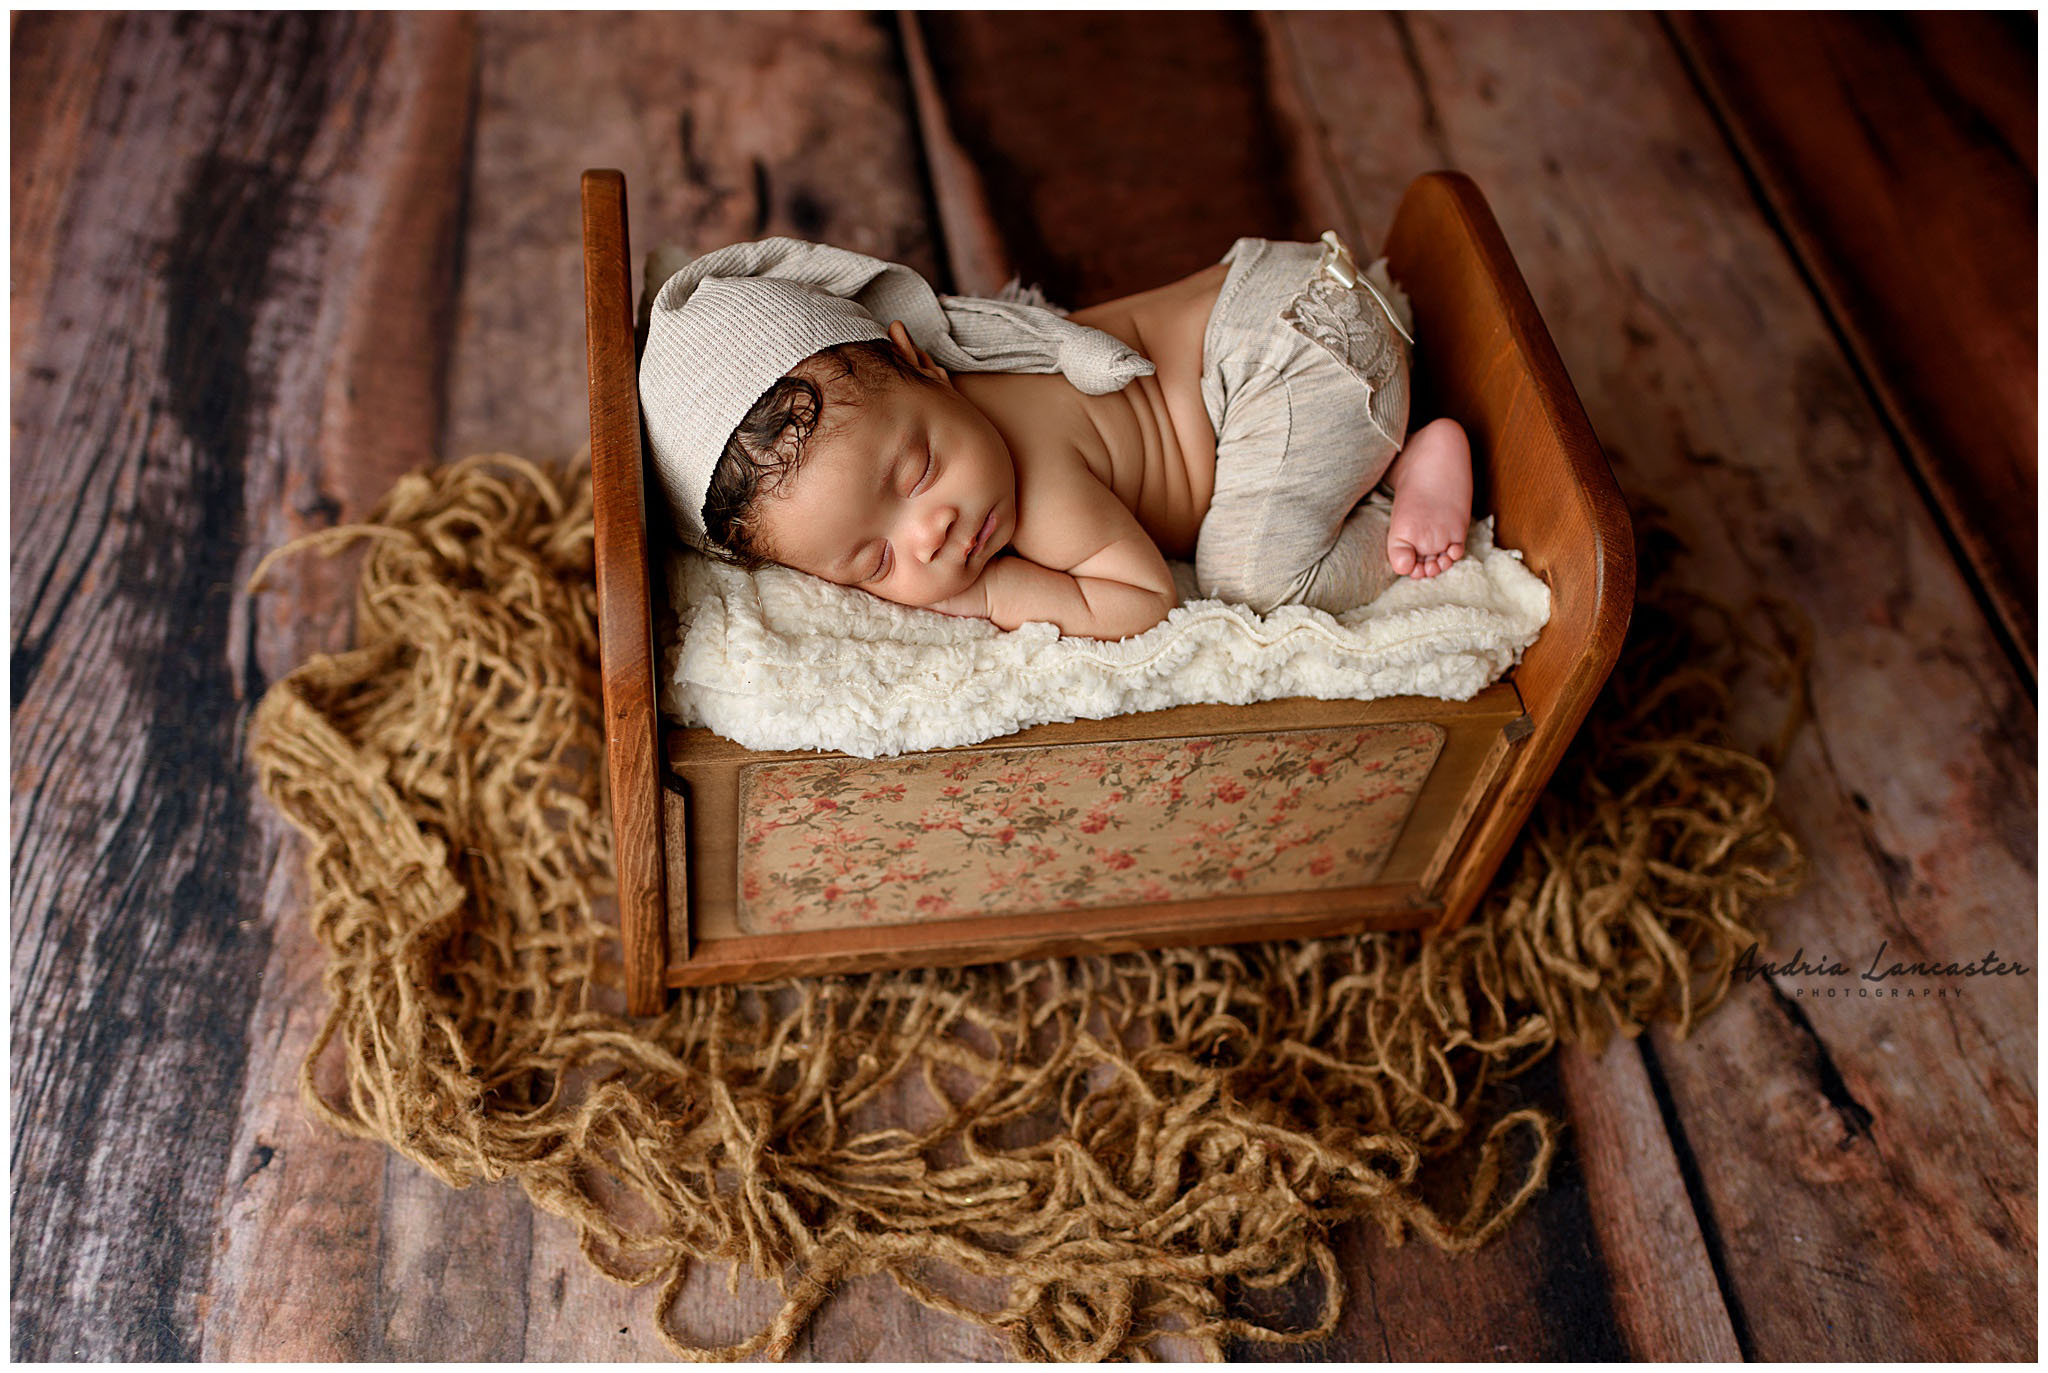 newborn posed on bed wearing pants with bow and sleepy cap